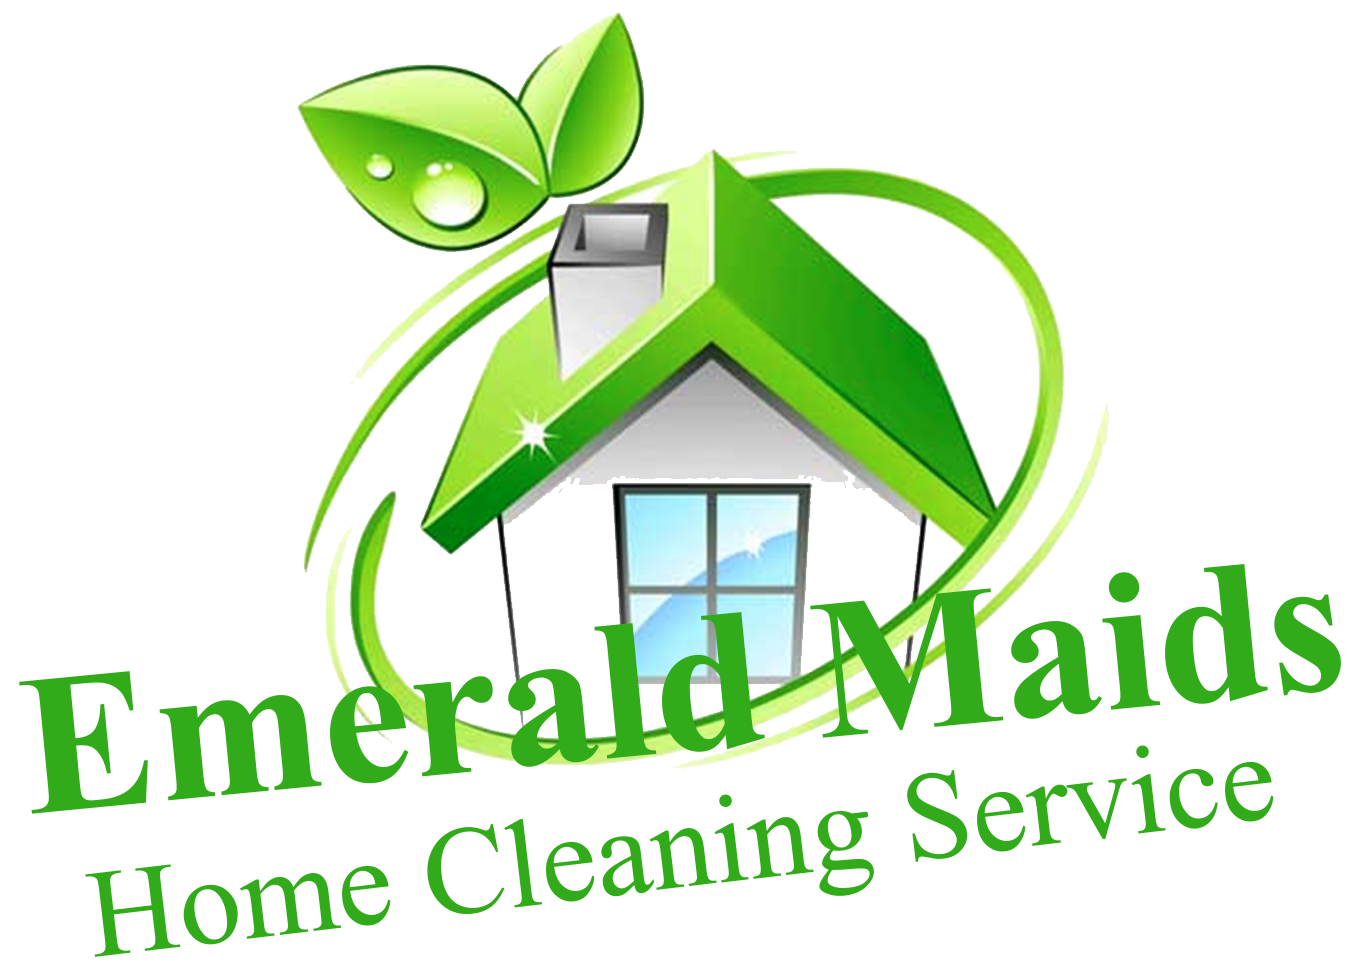 Clean house before and after clipart image library Emerald Maids Home Cleaning Service - Home - Emerald Maids image library